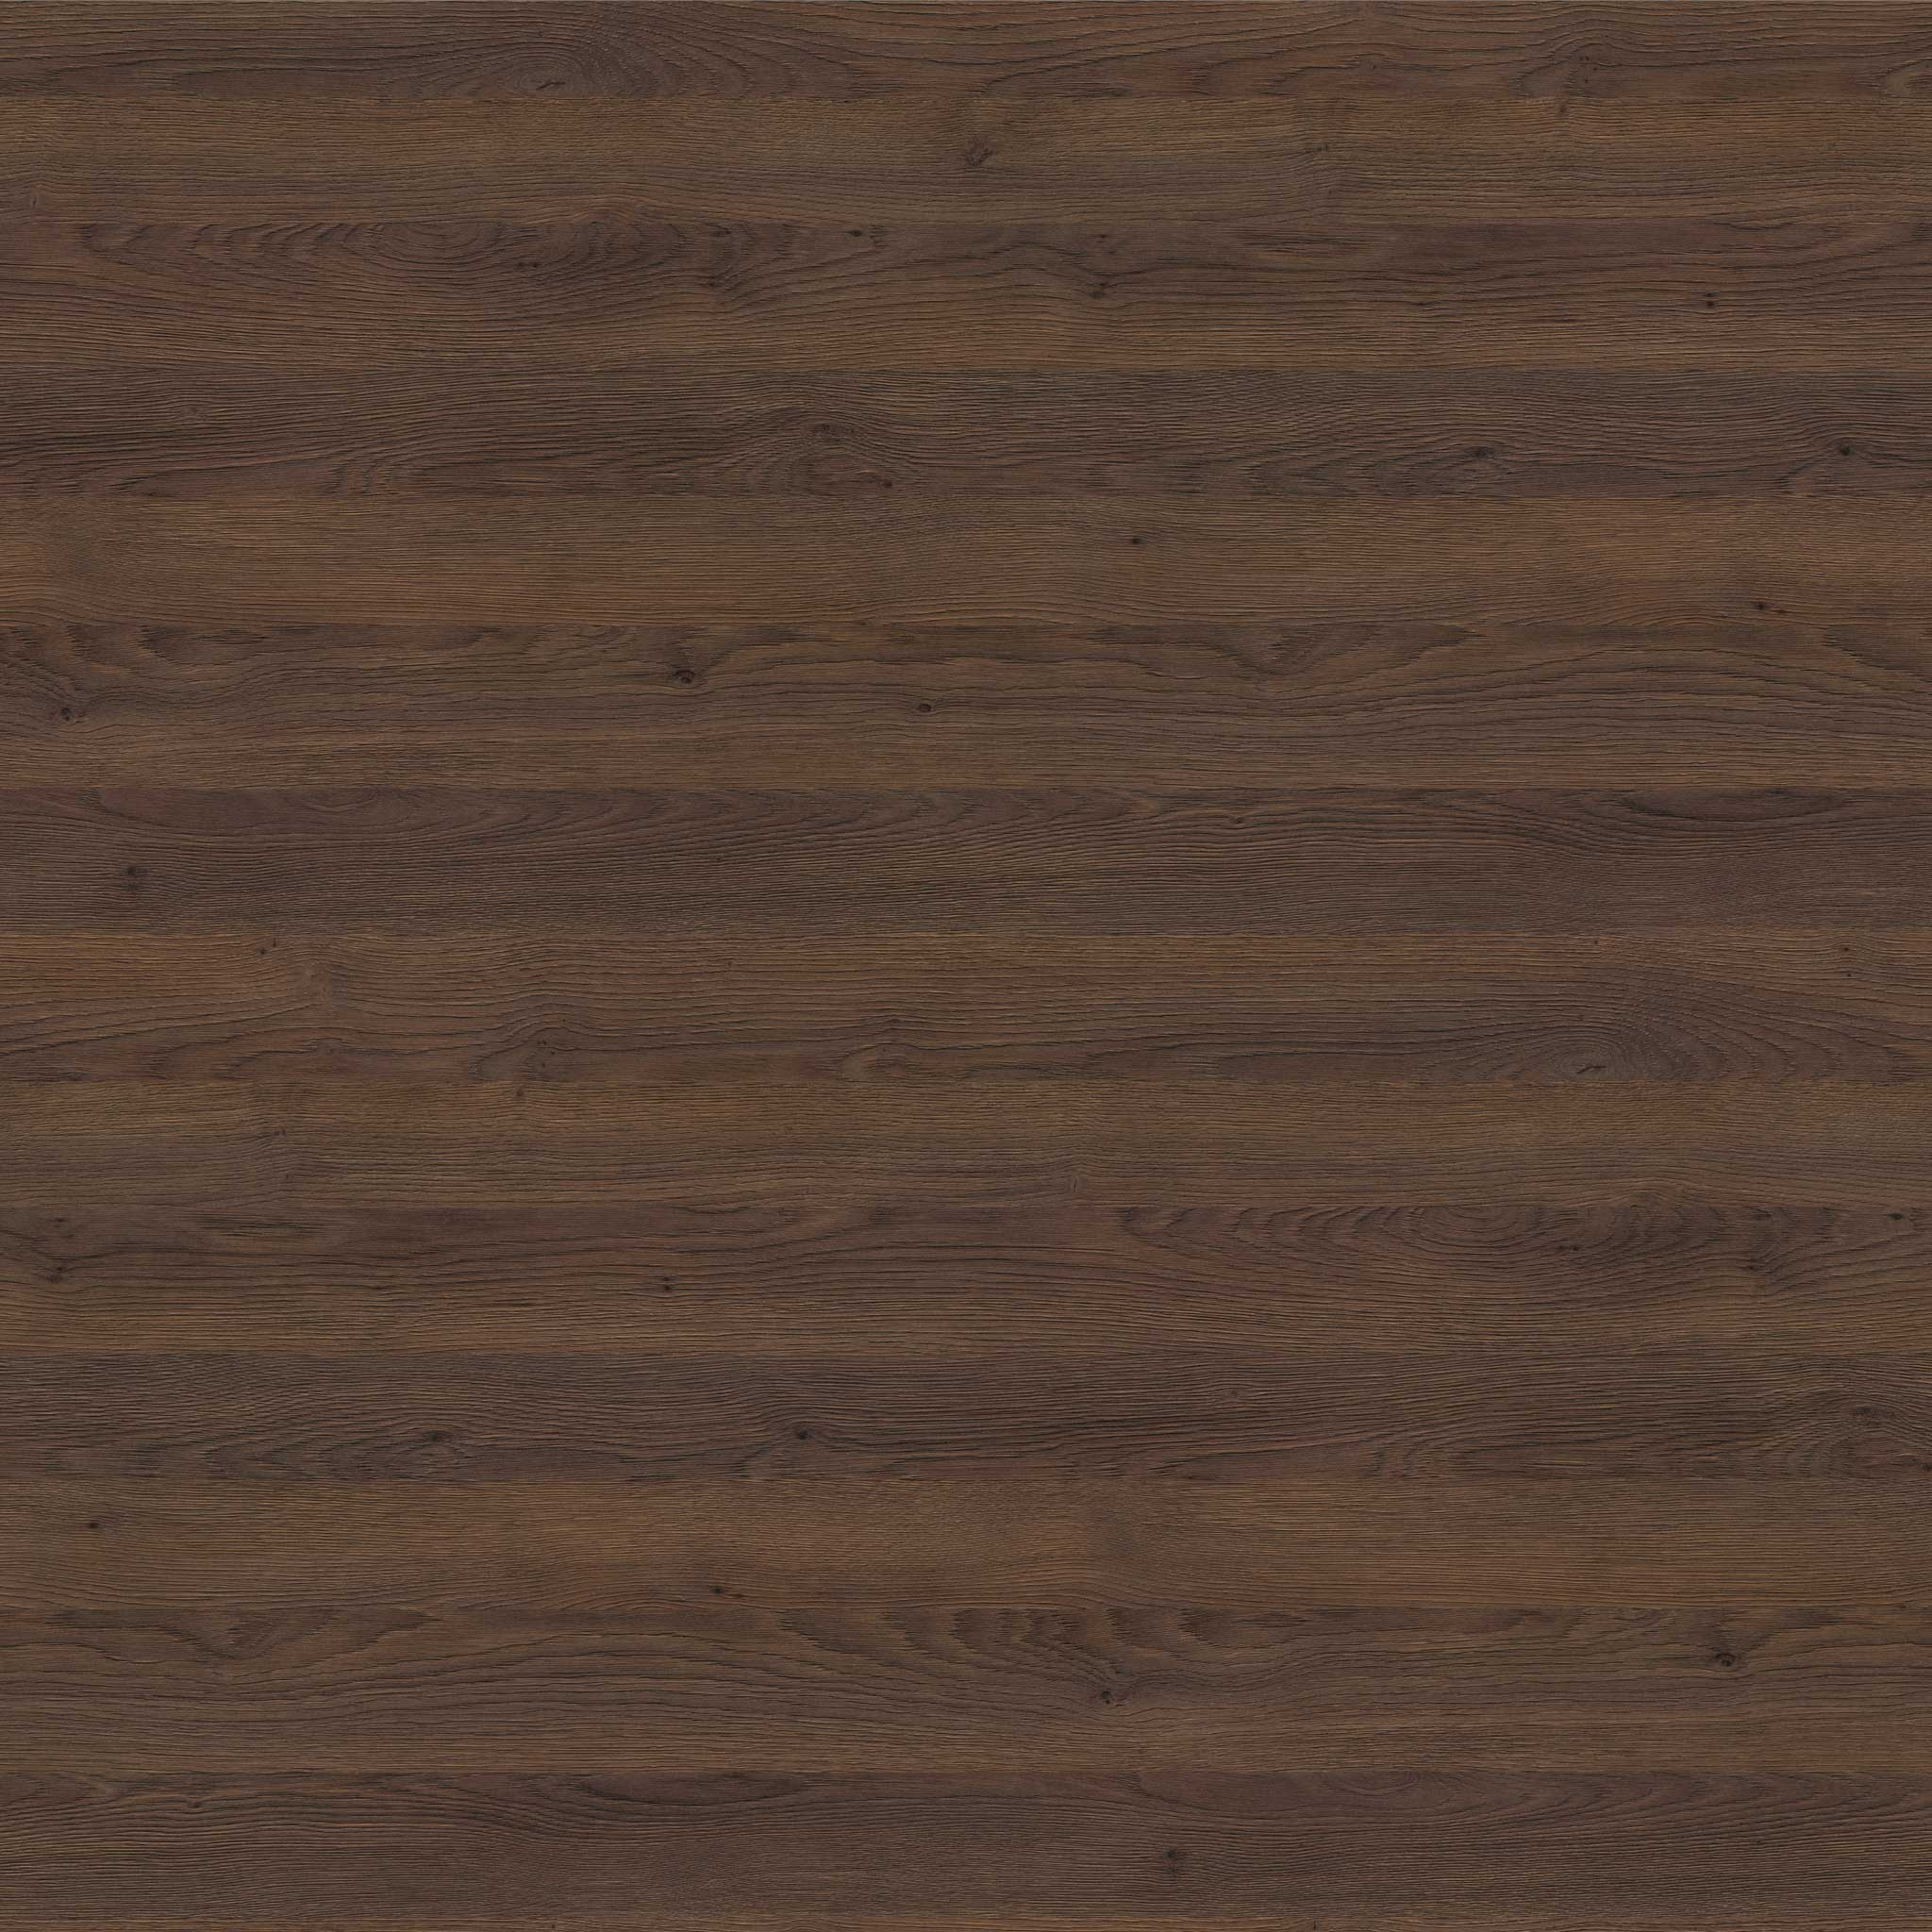 Egger Premium Tobacco Gladstone Oak kitchen worktop sample.